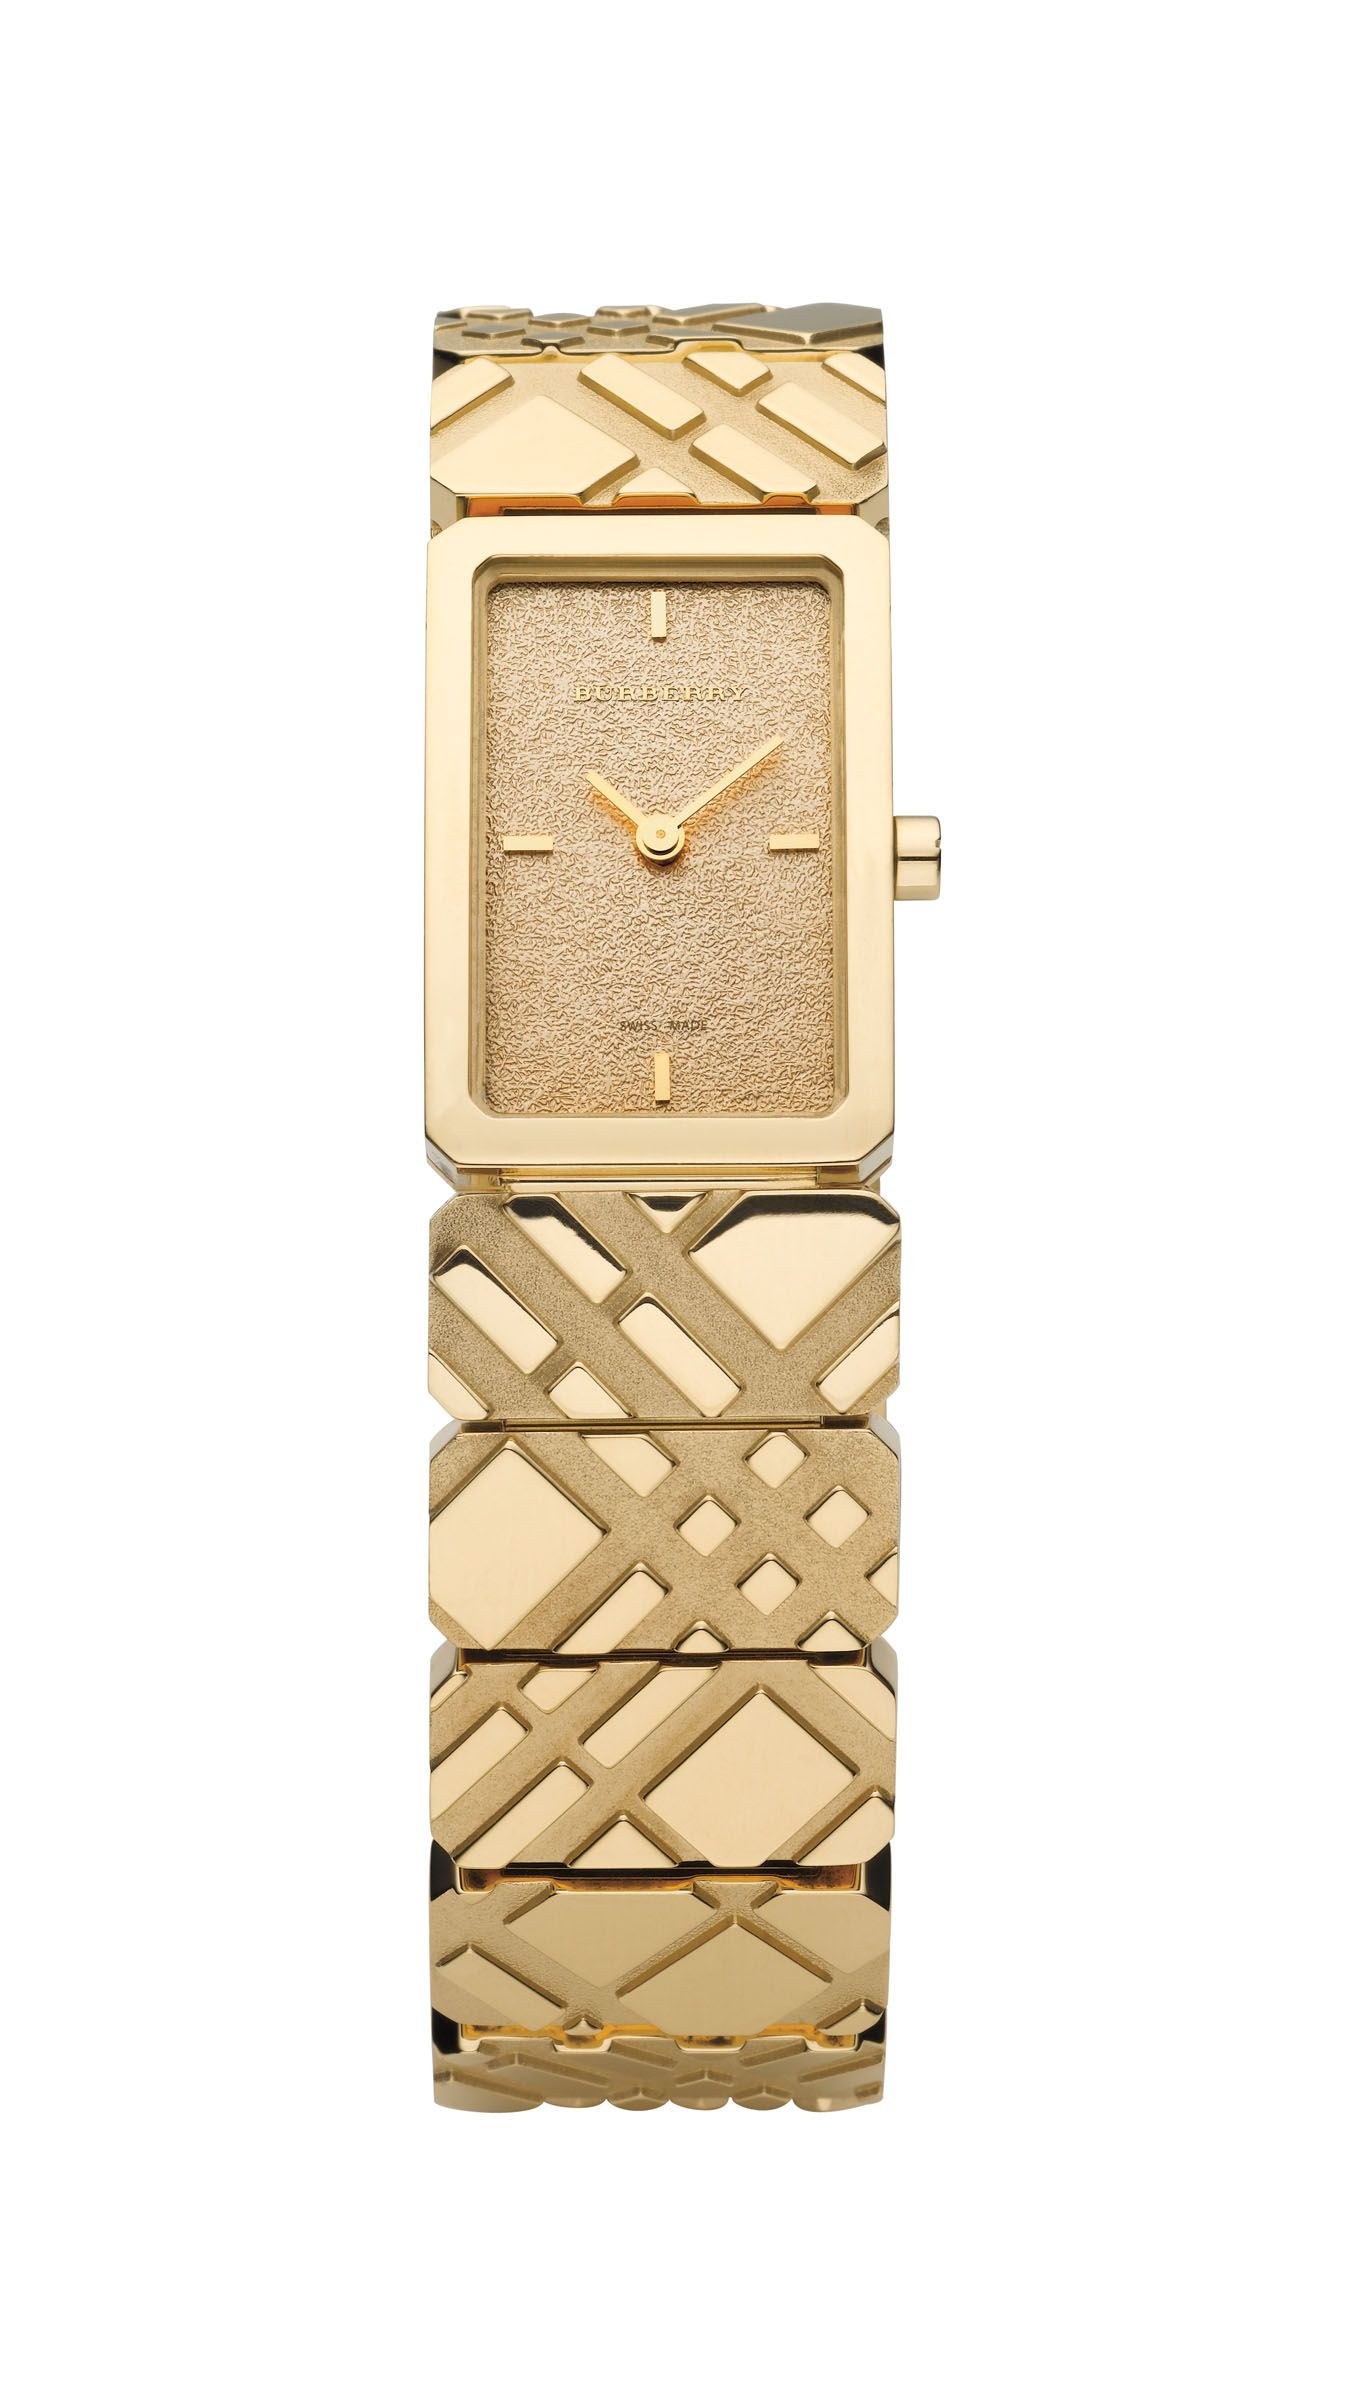 Rectangular dial watch